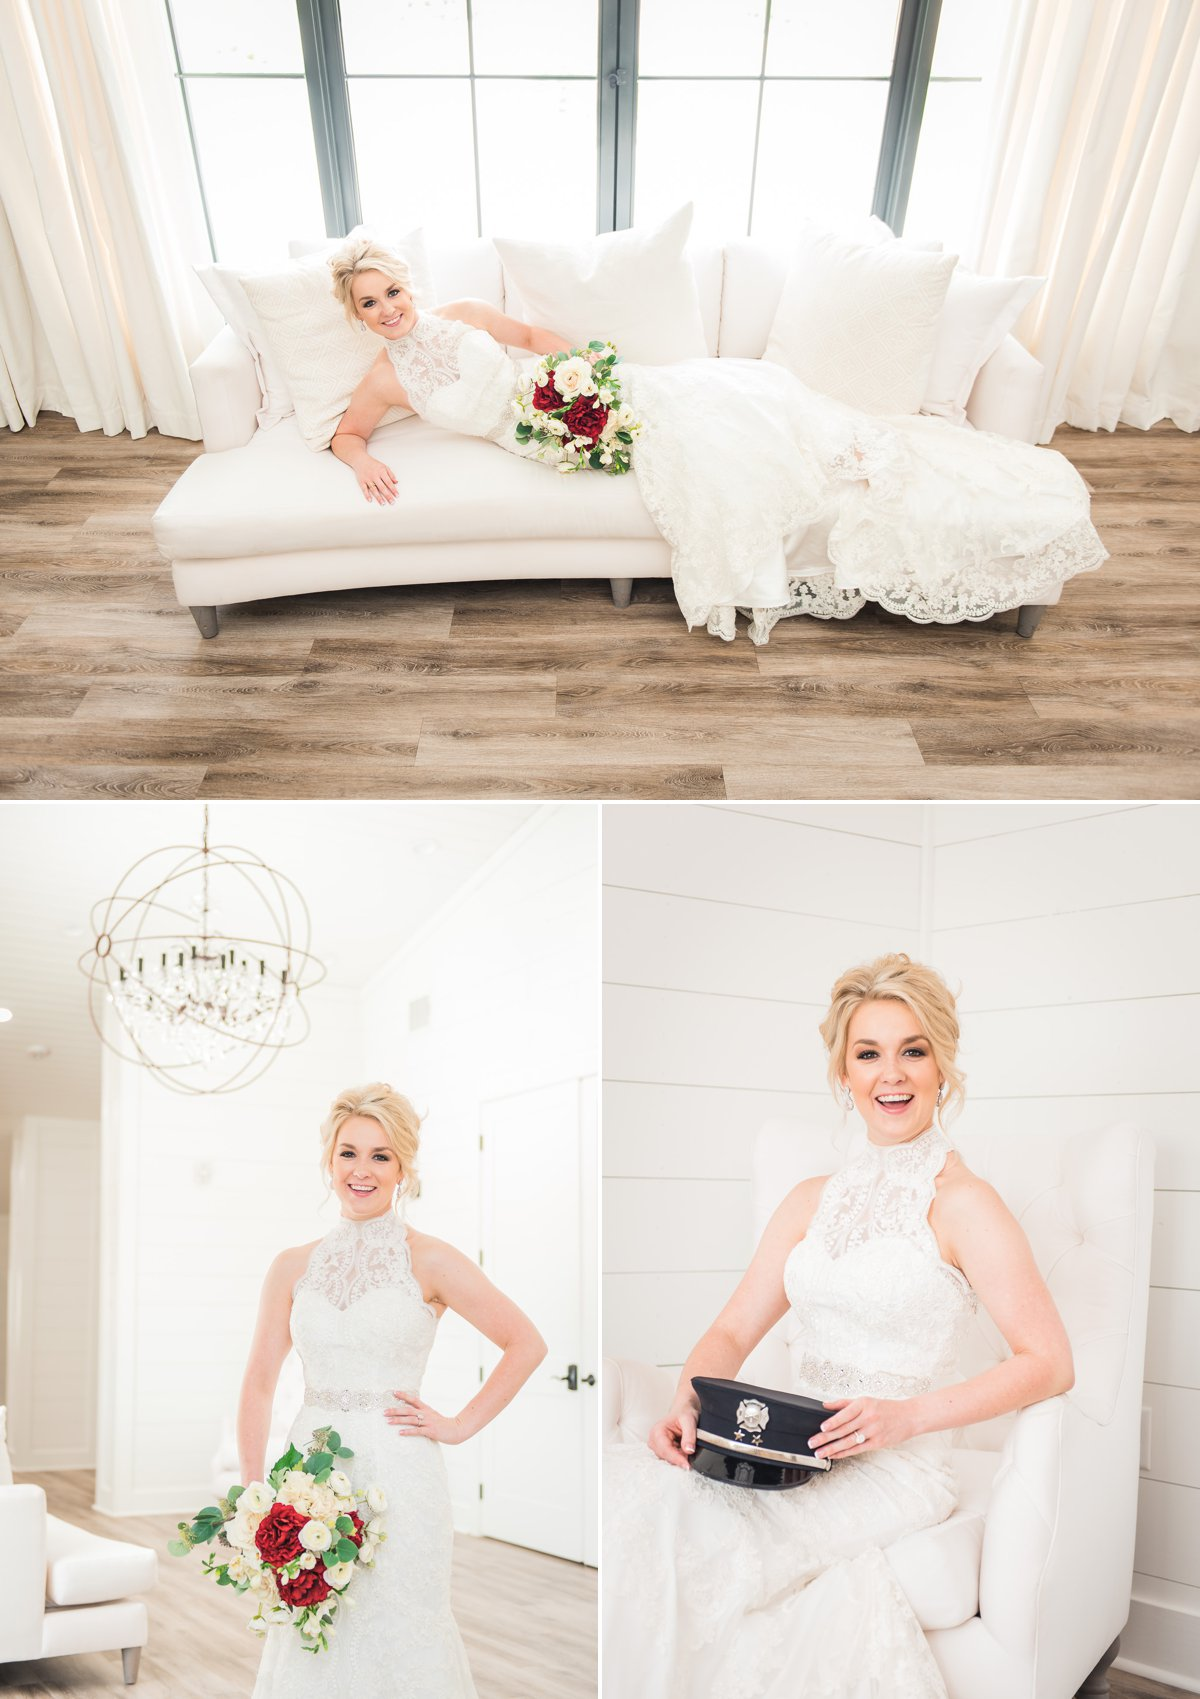 Bridal Photos at The Farmhouse Events